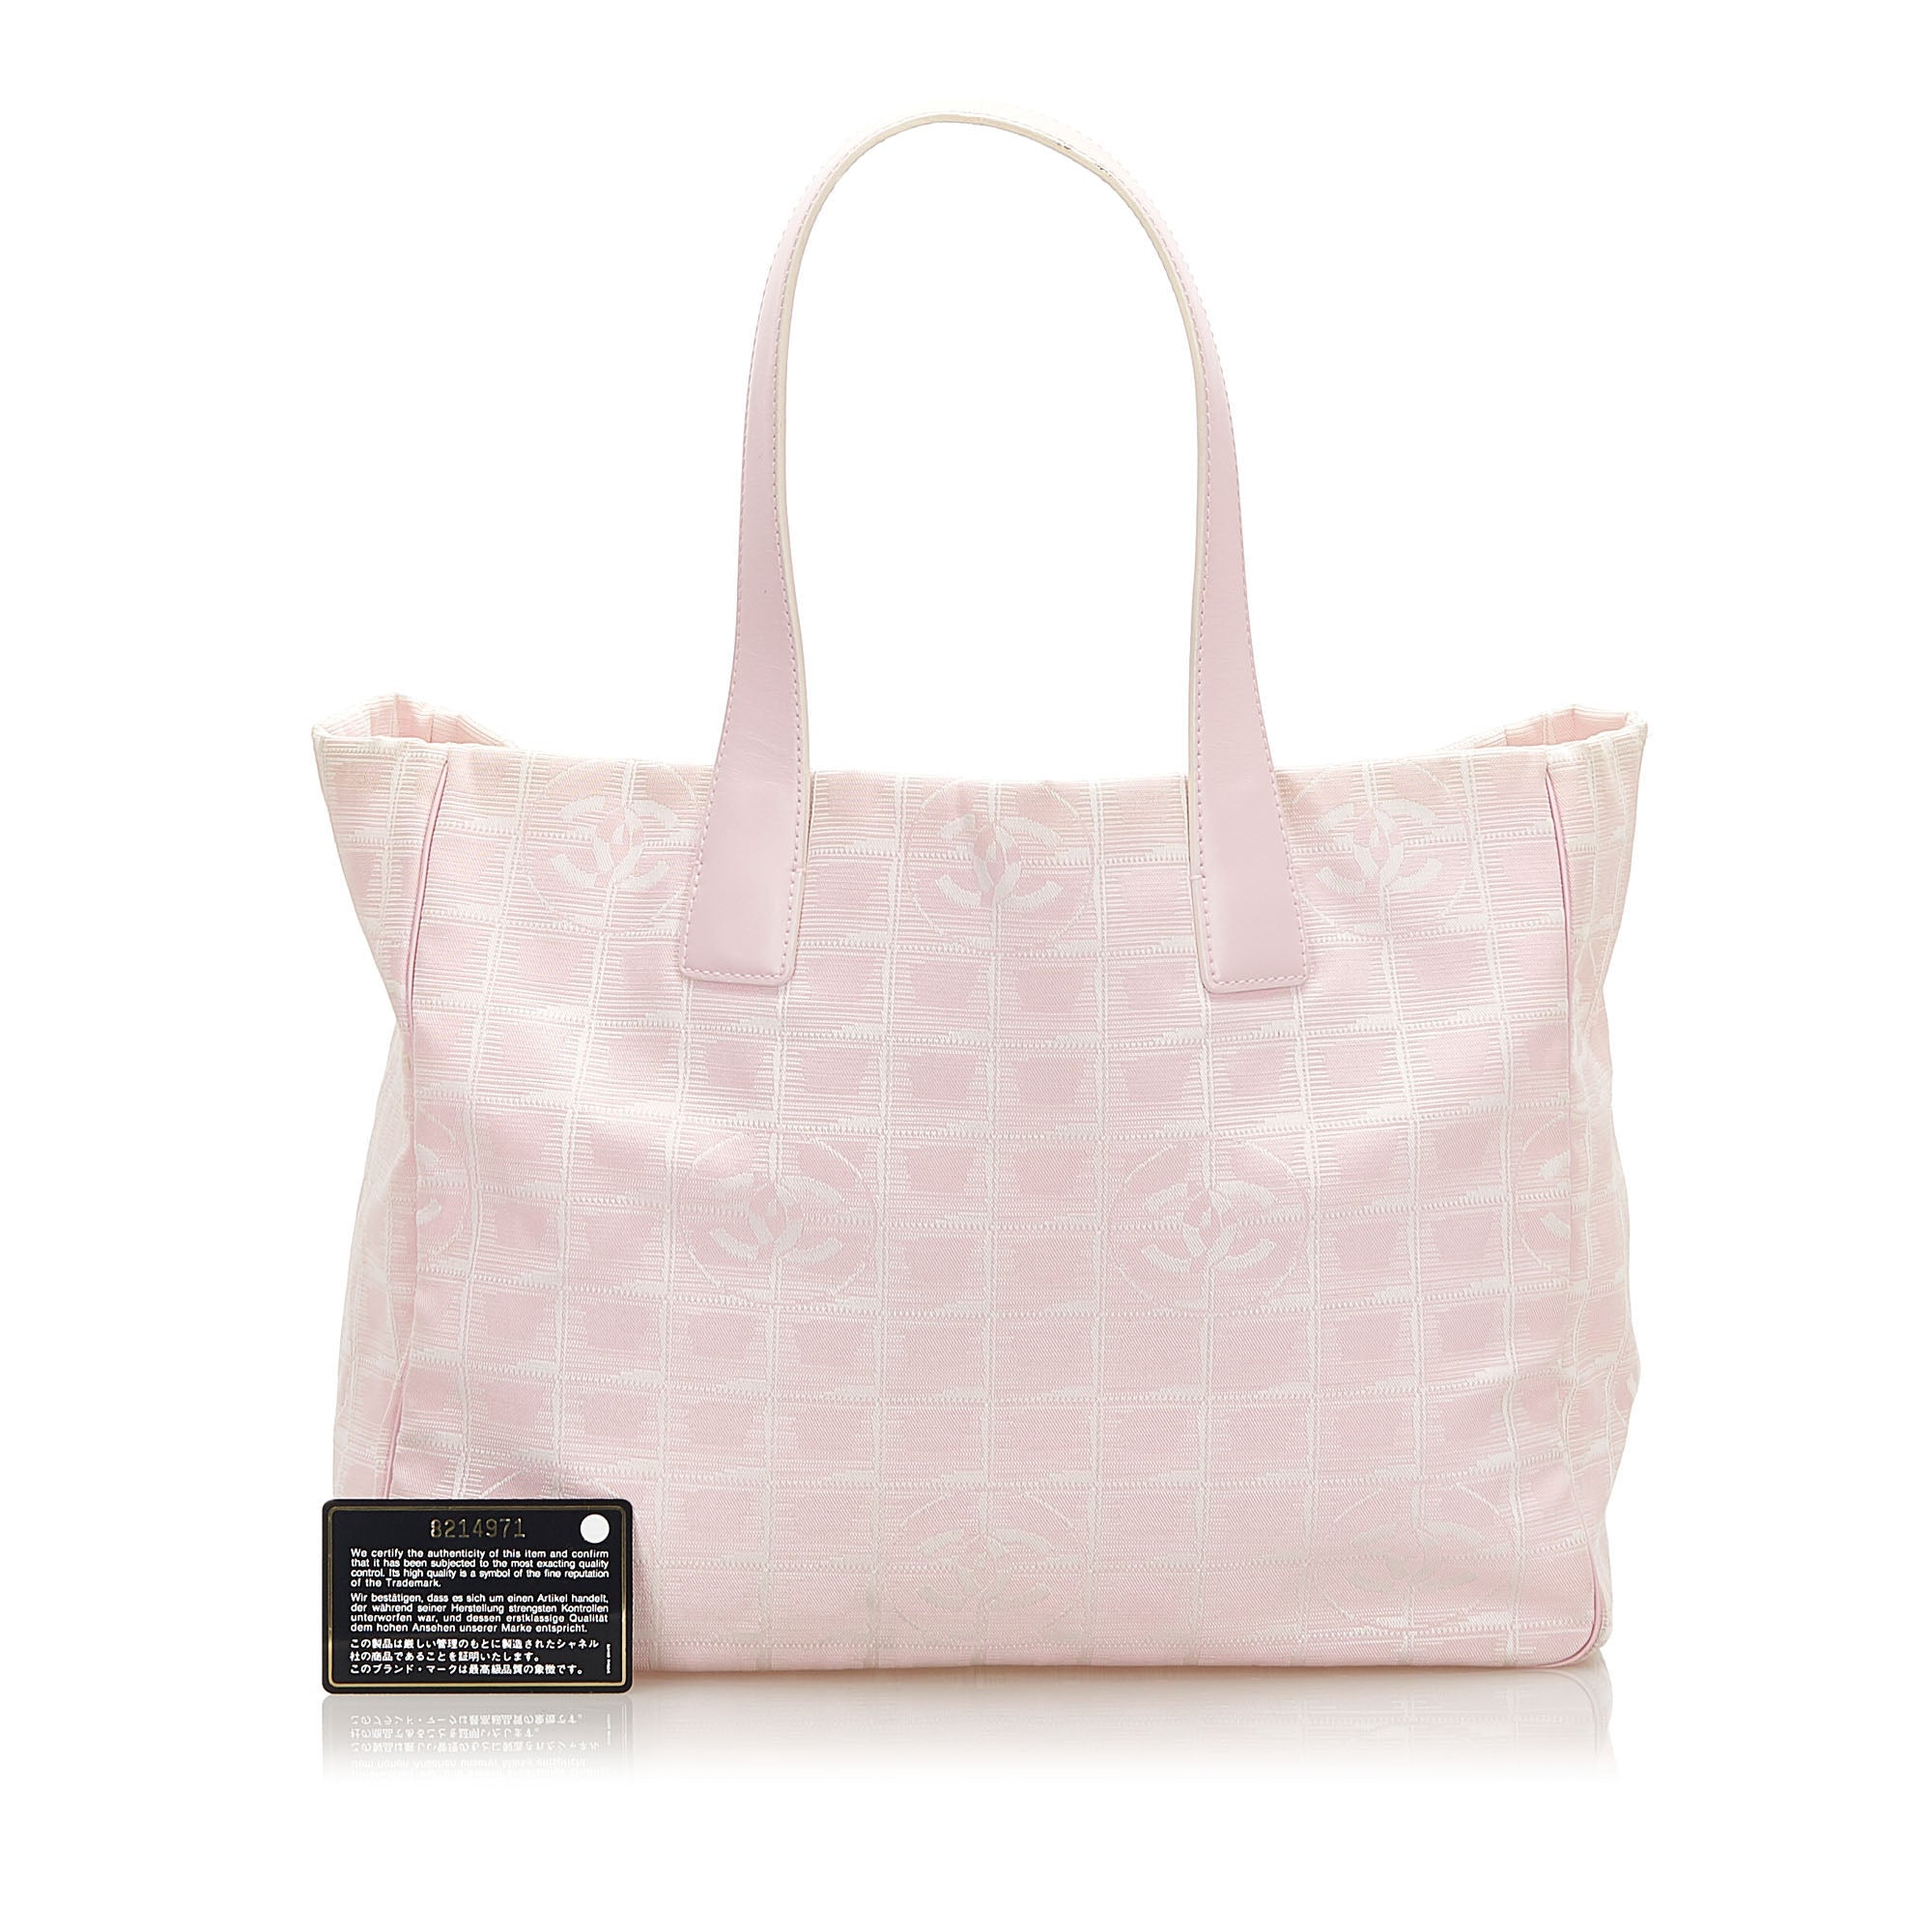 Chanel Pink New Travel Line Canvas Tote Bag